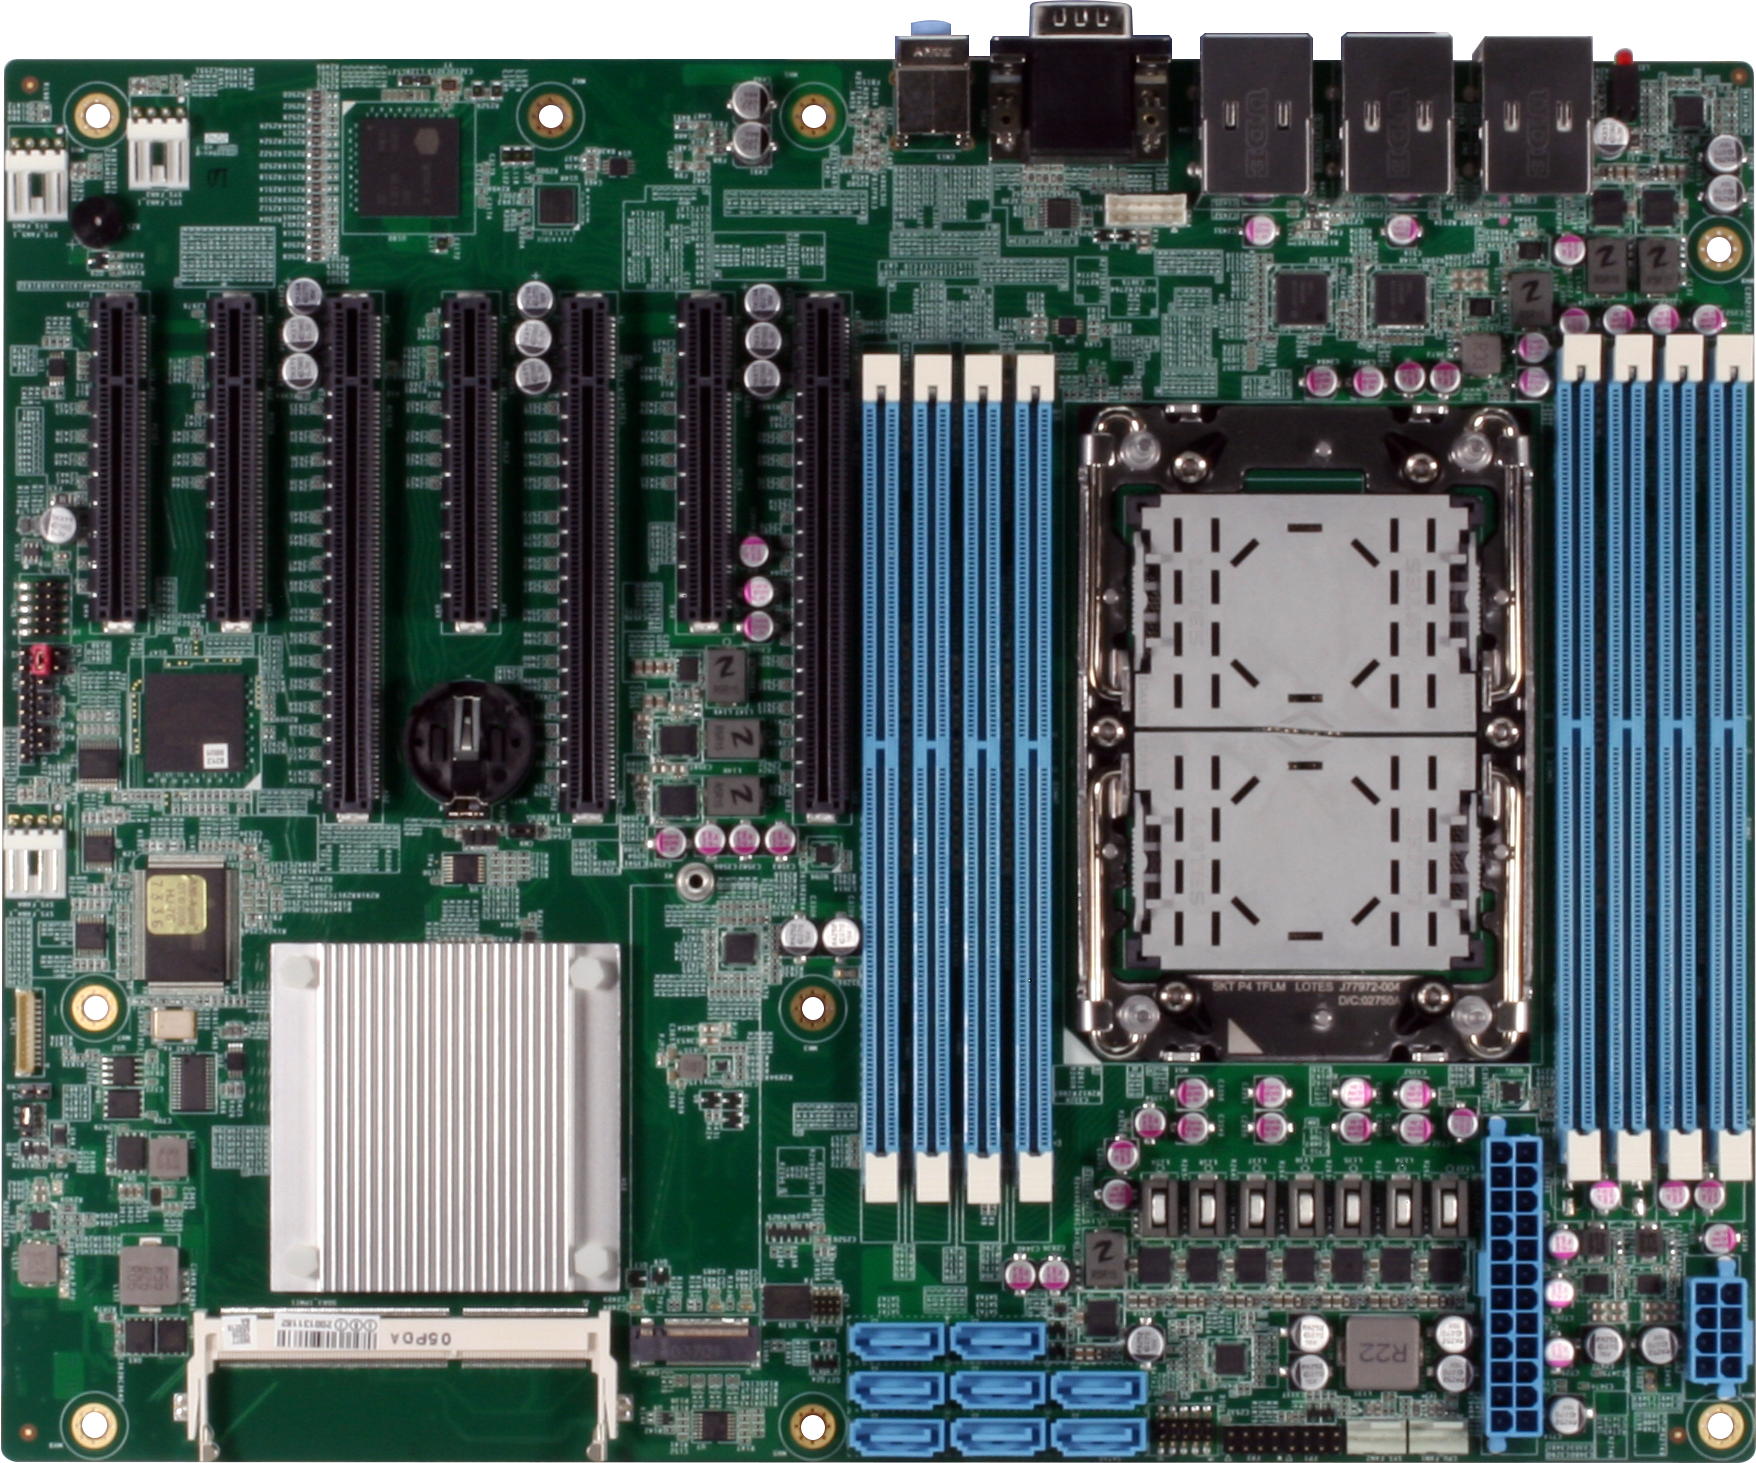 AAEON Celebrates Launch of 3rd Generation Intel® Xeon® SP Processors and Announces ARES-WHI0 Server Board